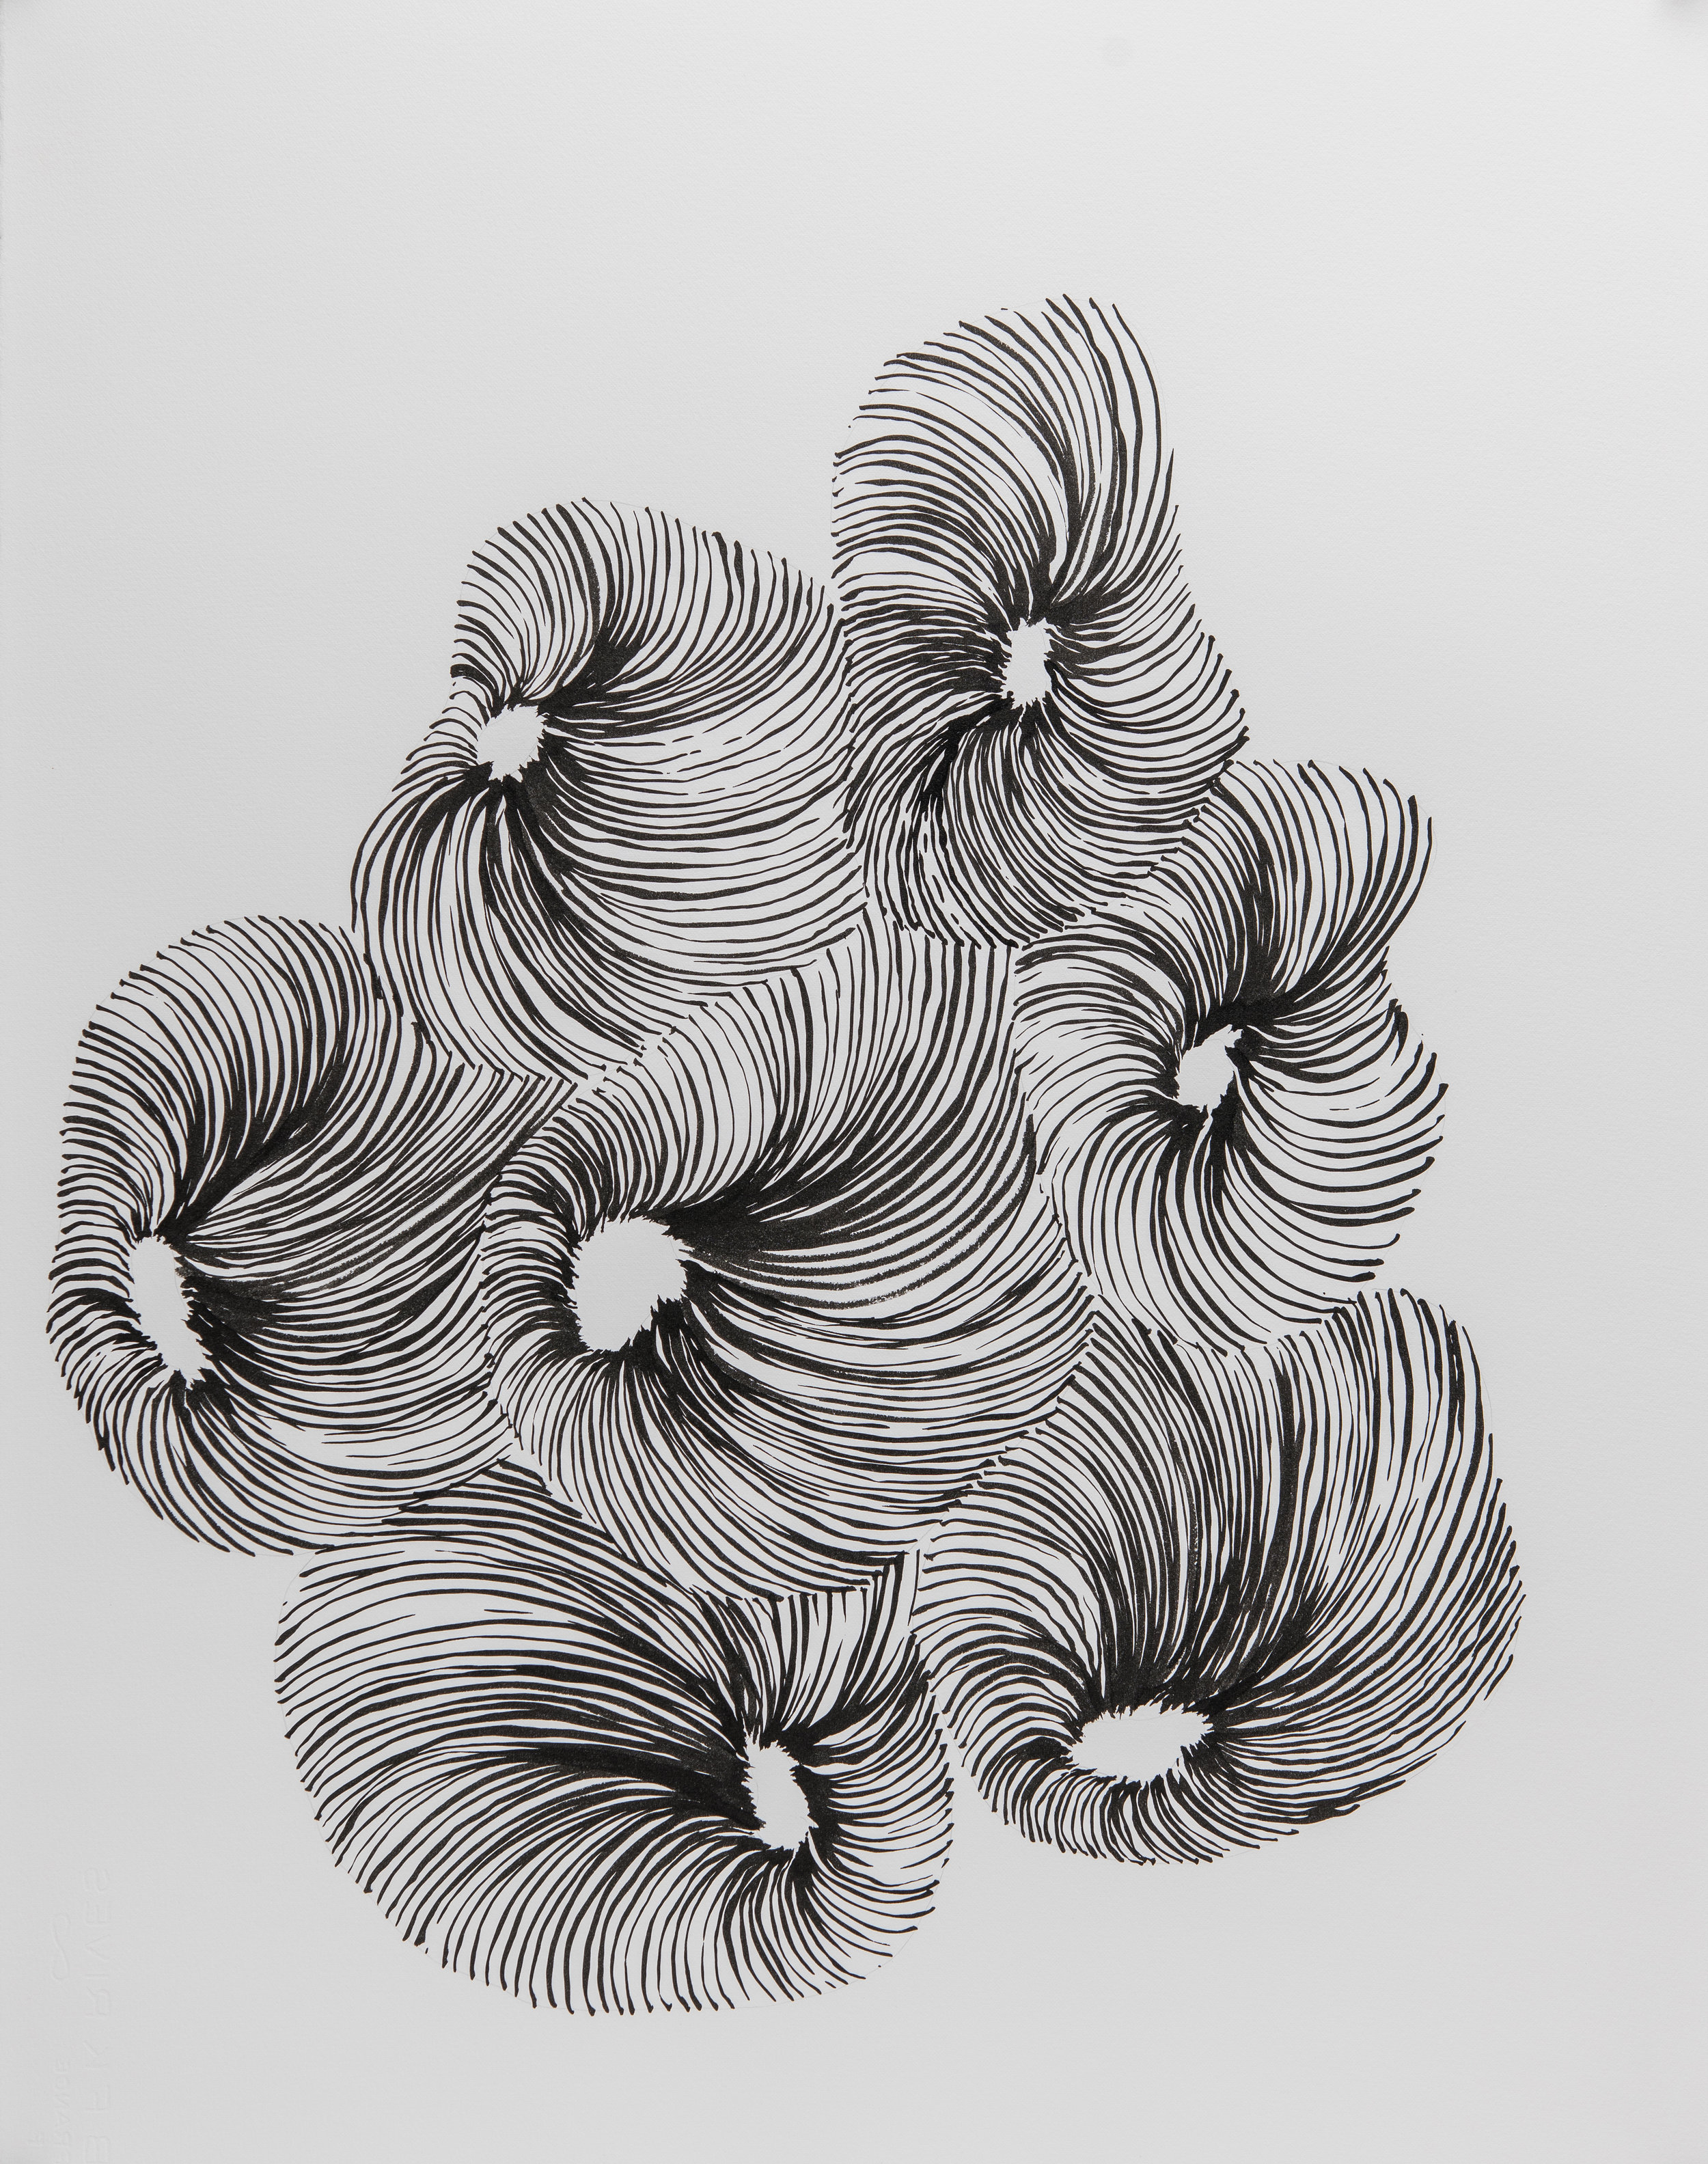 Untitled , 2018, Carlton Newton, Sumi ink on paper, 30 x 22 inches